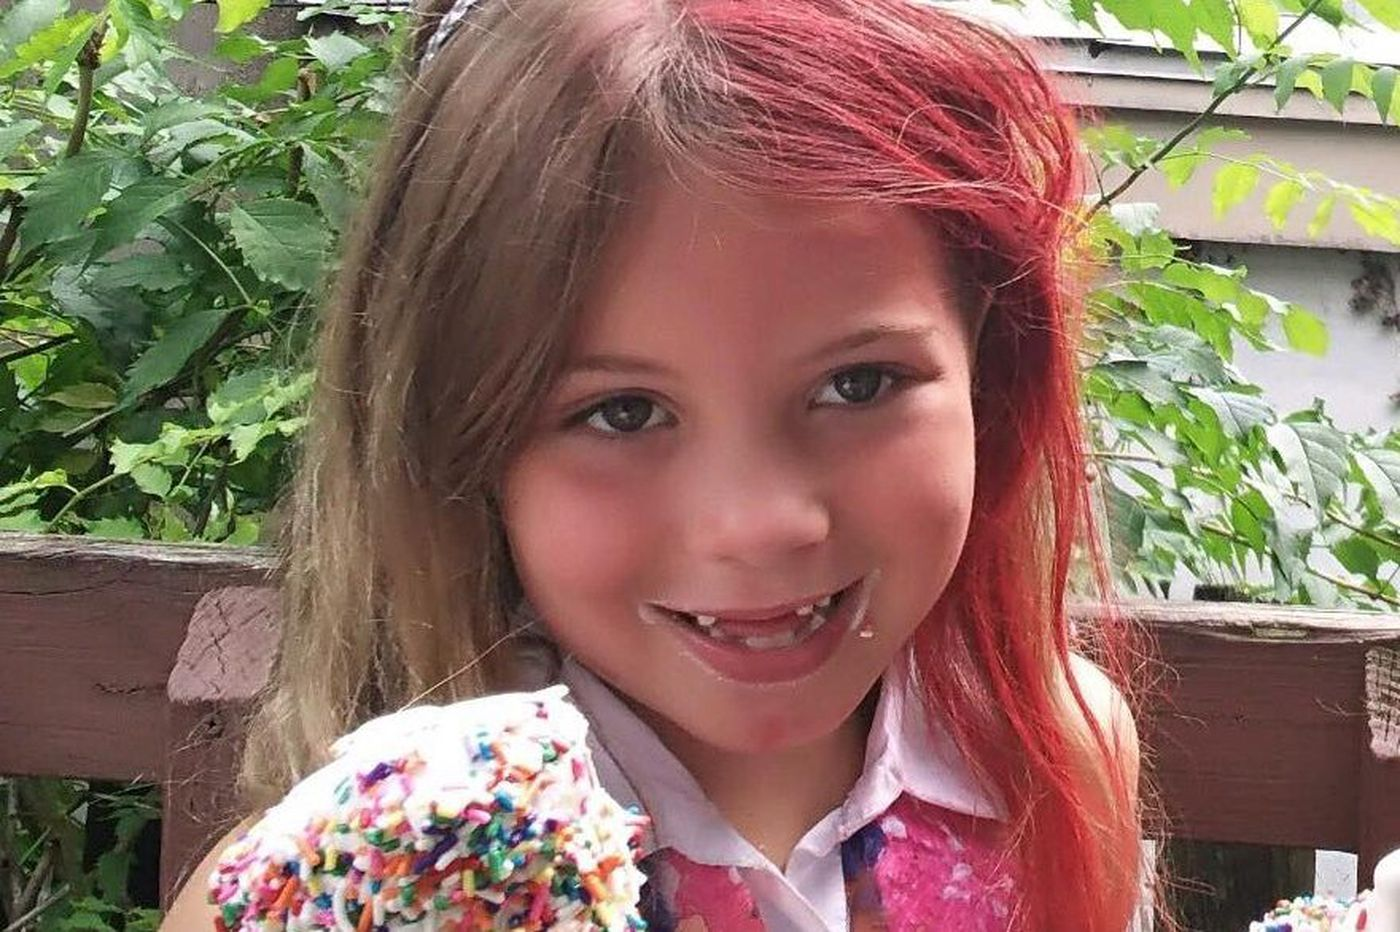 After 7-year-old Kayden Mancuso was killed by her own father a year ago, her mother now fights to protect other children | Jenice Armstrong